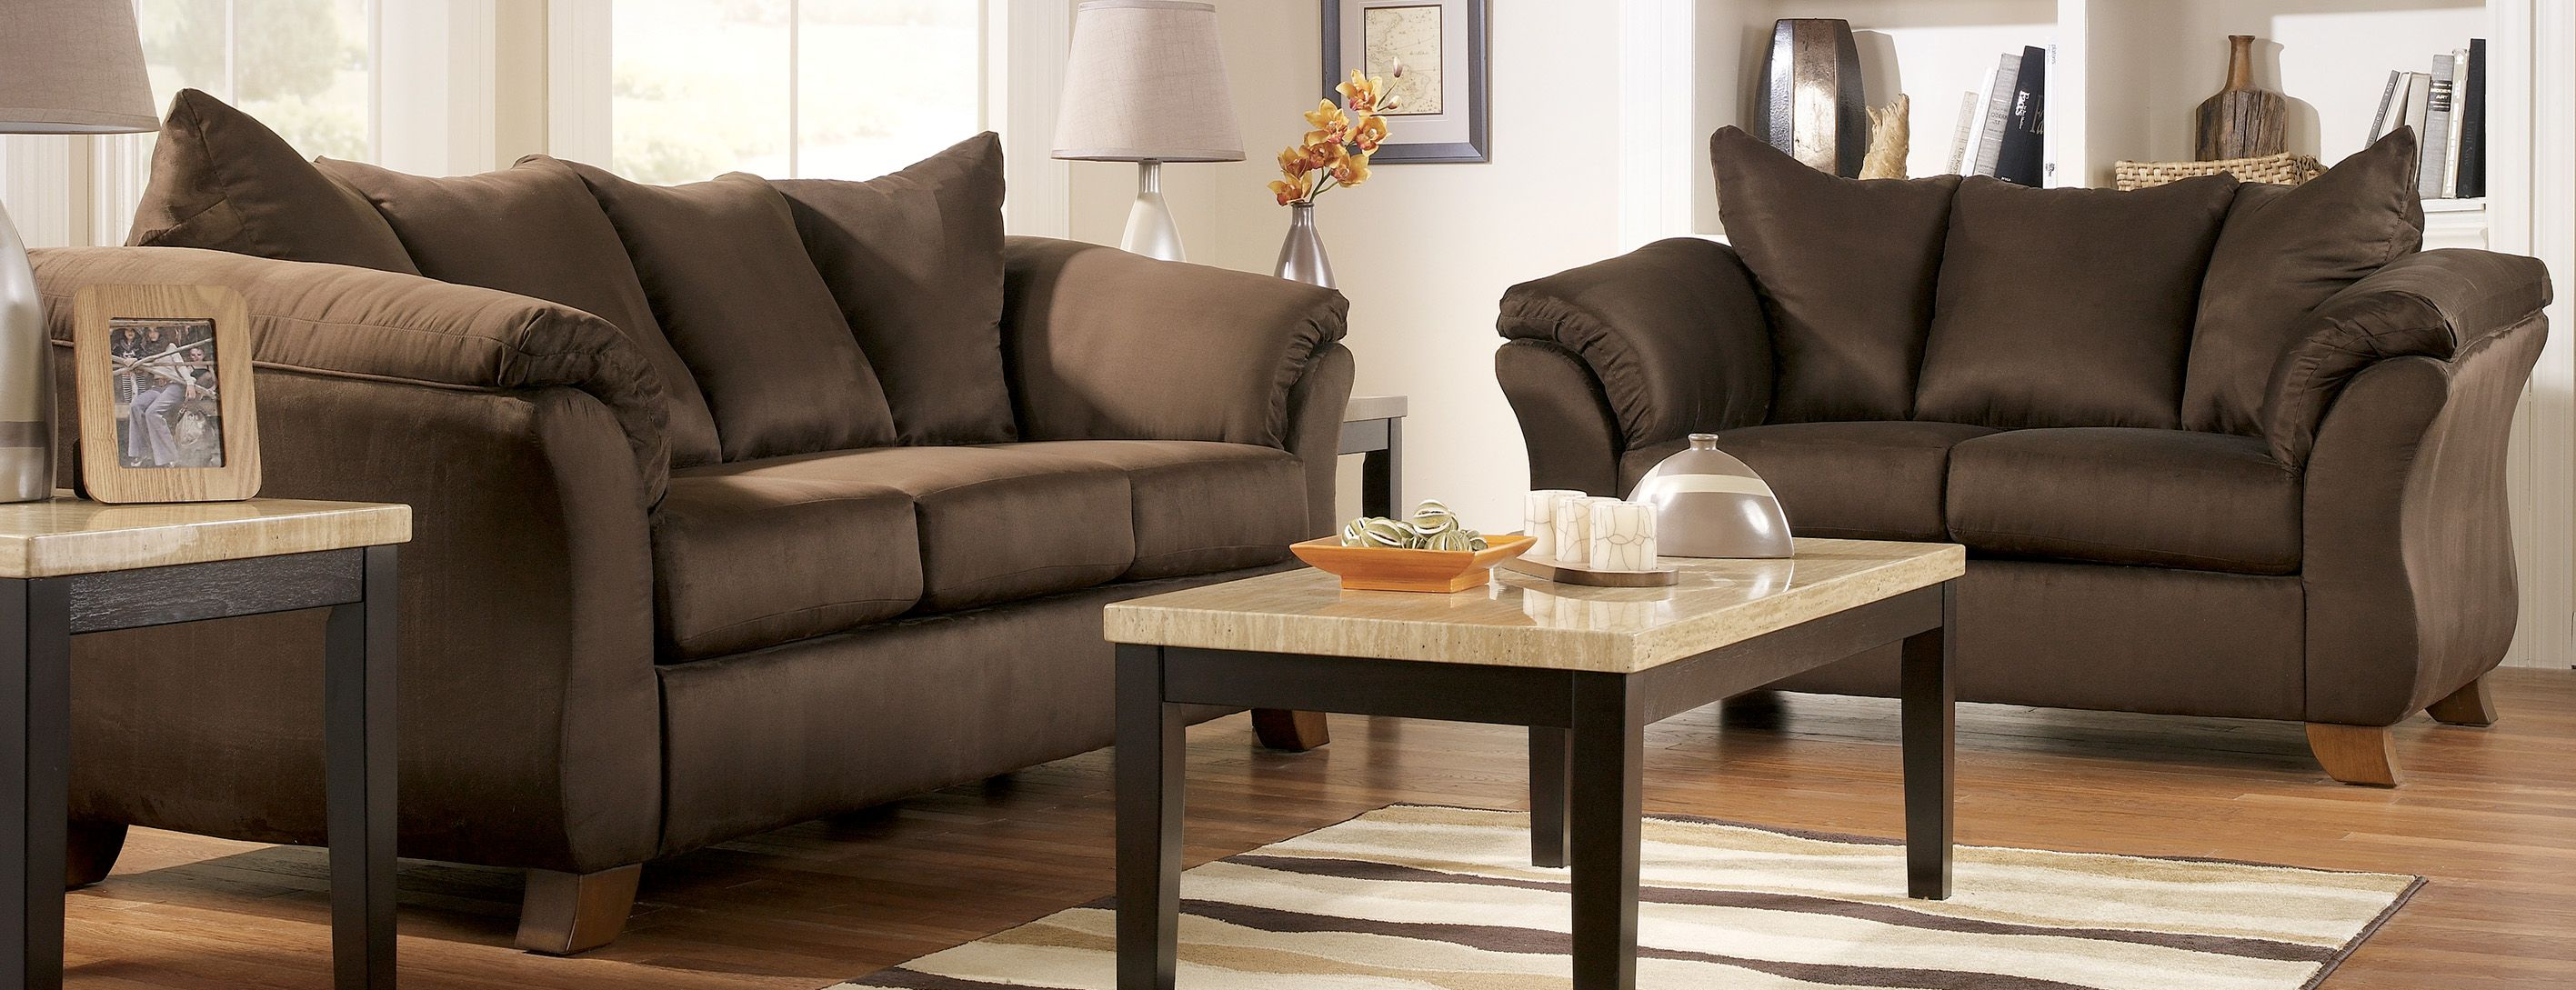 Living Room Sofa · Amazing Decorating Ideas For Living Rooms Canada    Http://trstil.com/